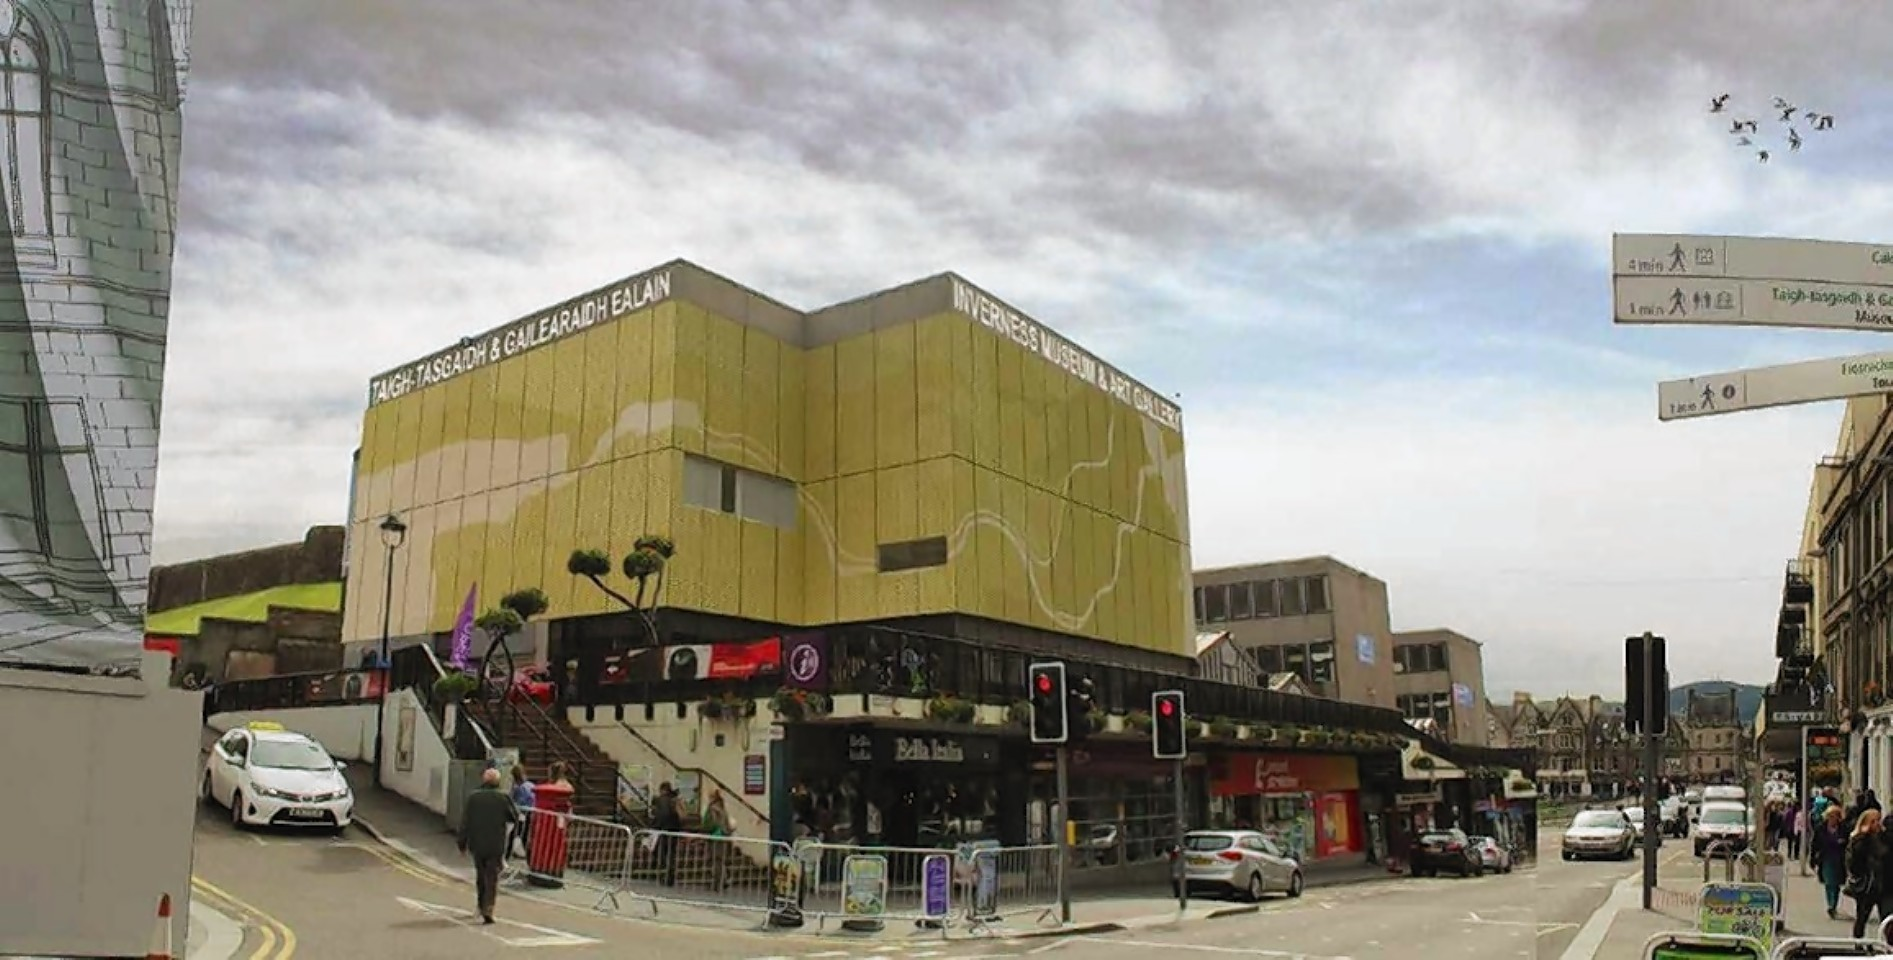 Artist's impression of the gold cladding